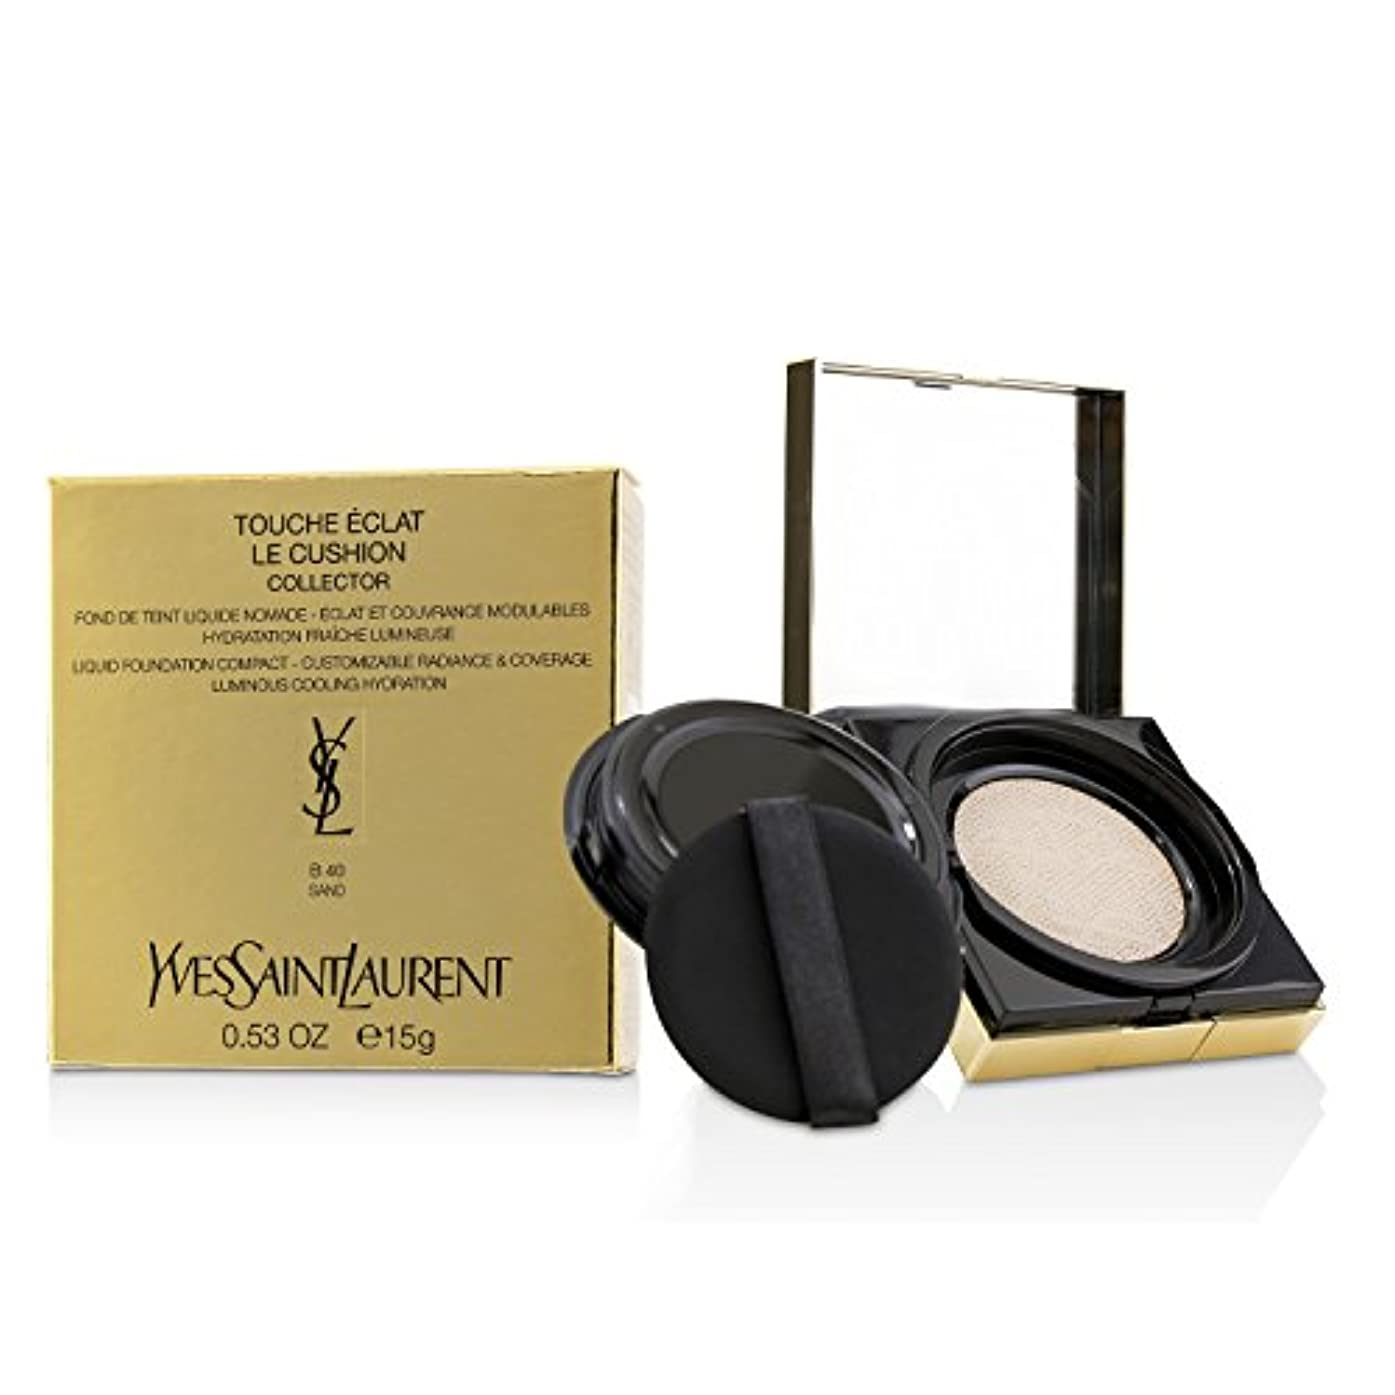 土器消費する意図イヴサンローラン Touche Eclat Le Cushion Liquid Foundation Compact - #B40 Sand (Collector) 15g/0.53oz並行輸入品